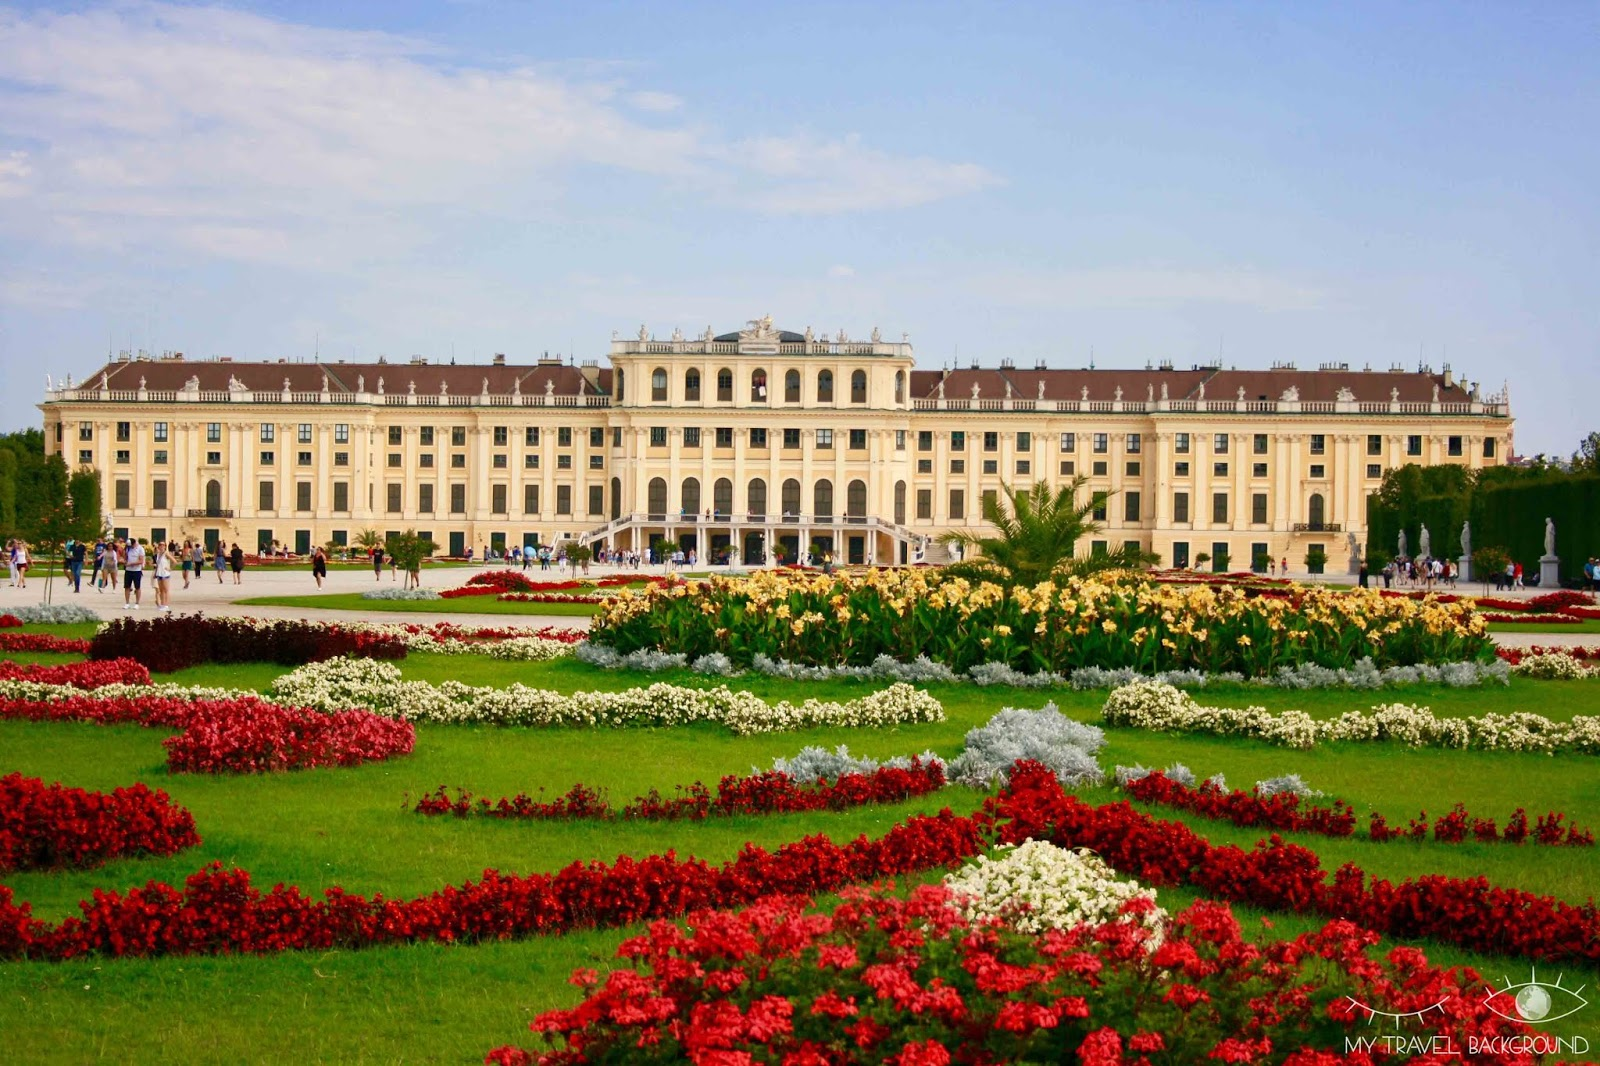 My Travel Background : visiter Vienne, la capitale de l'Autriche, en 3 jours - Le Schloss Schönbrunn